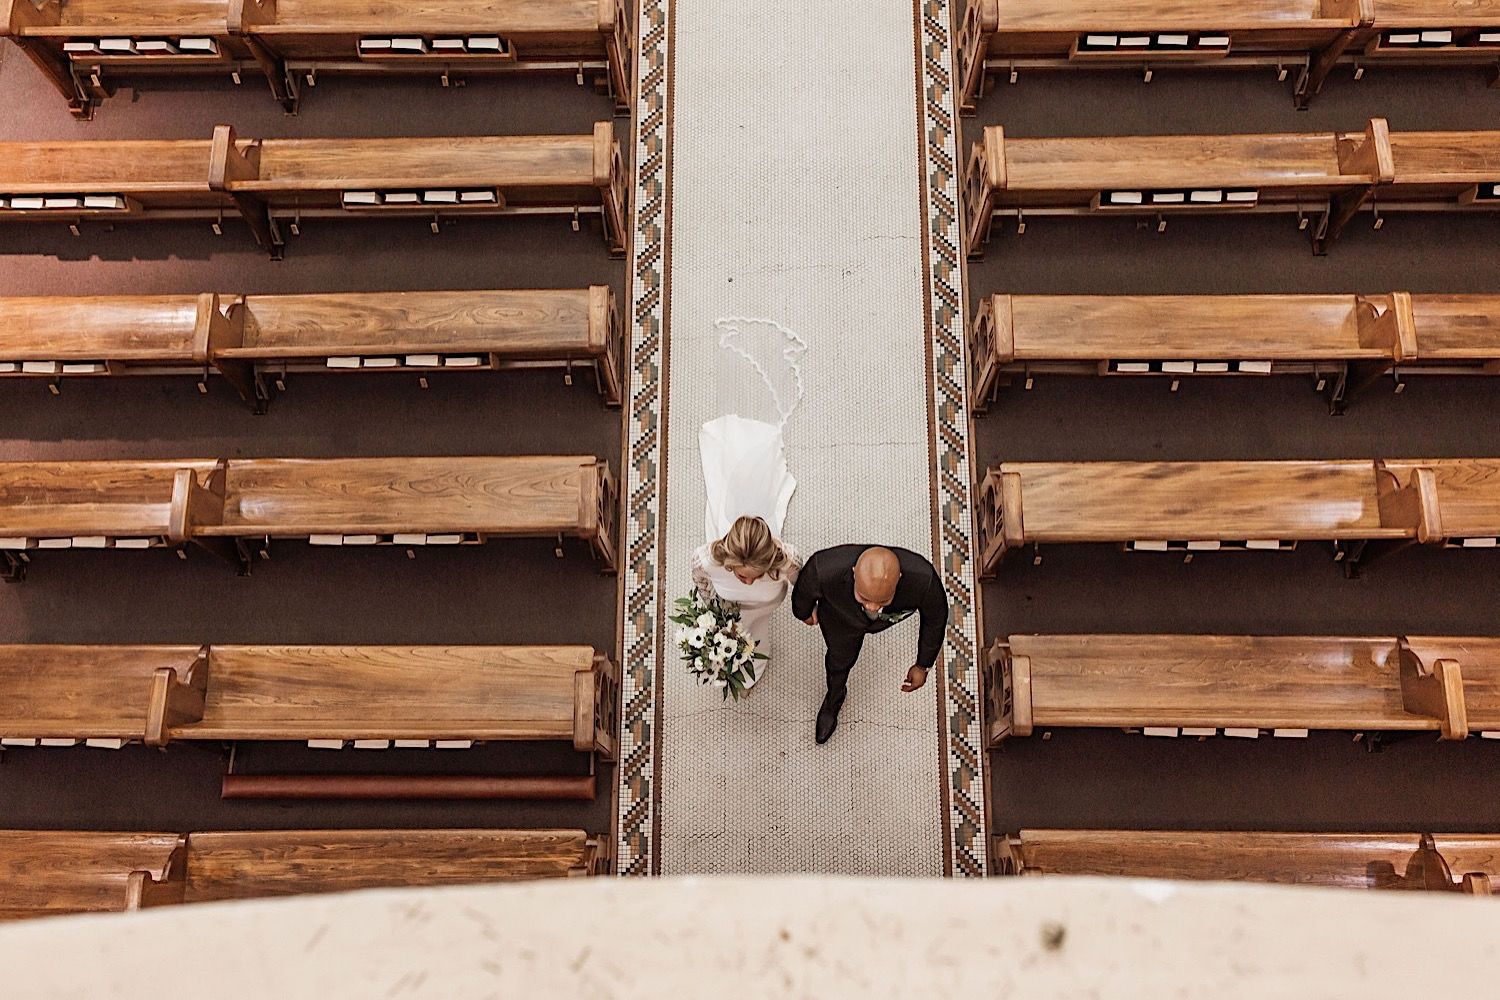 the bride and groom walking down the aisle at their wedding photographed from above